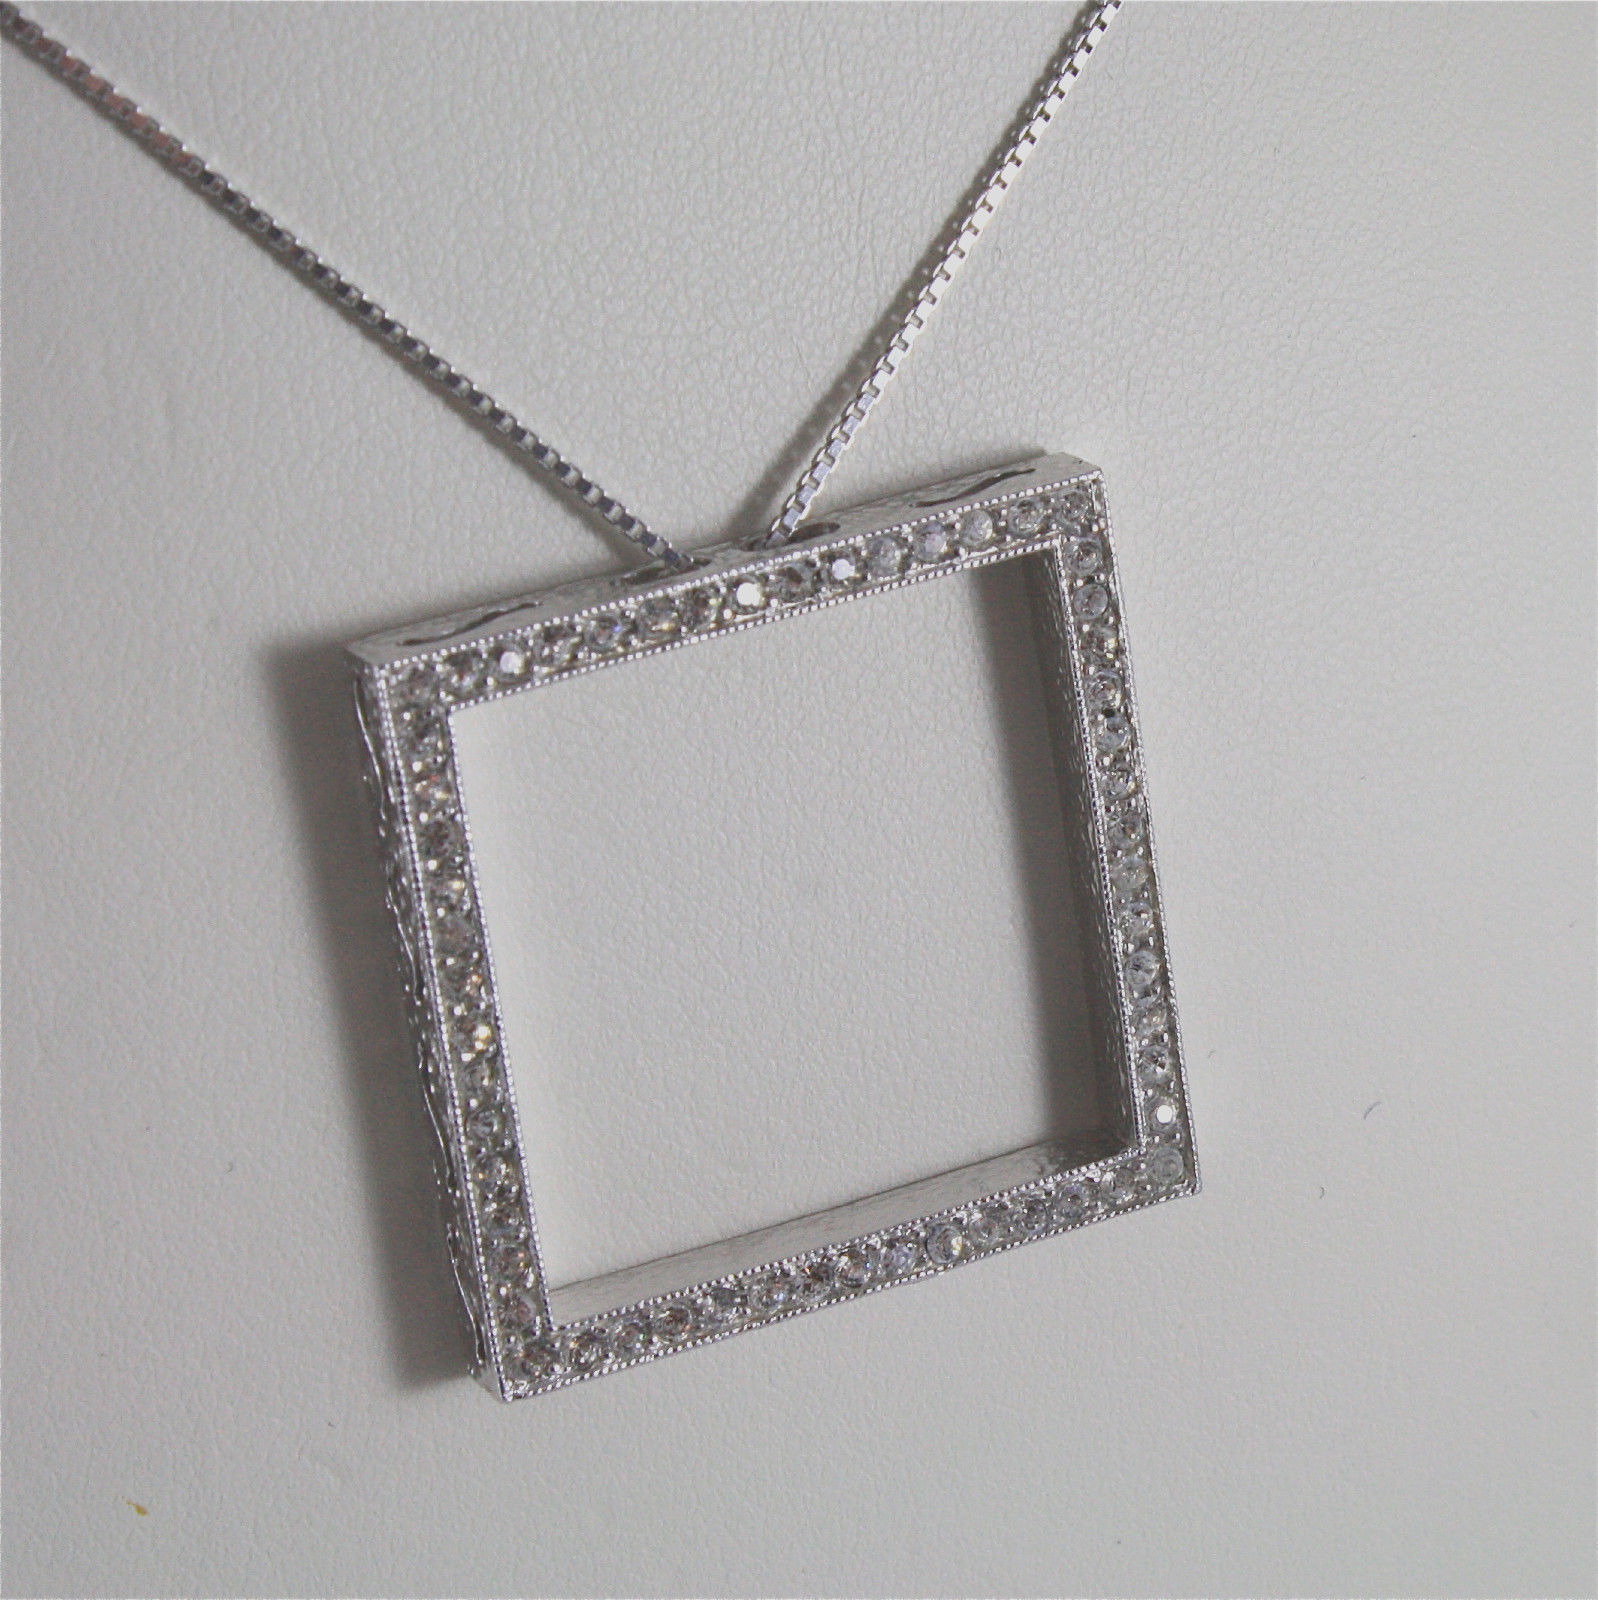 .925 RHODIUM SILVER NECKLACE, SQUARE SHAPED, FACETED ZIRCONIA